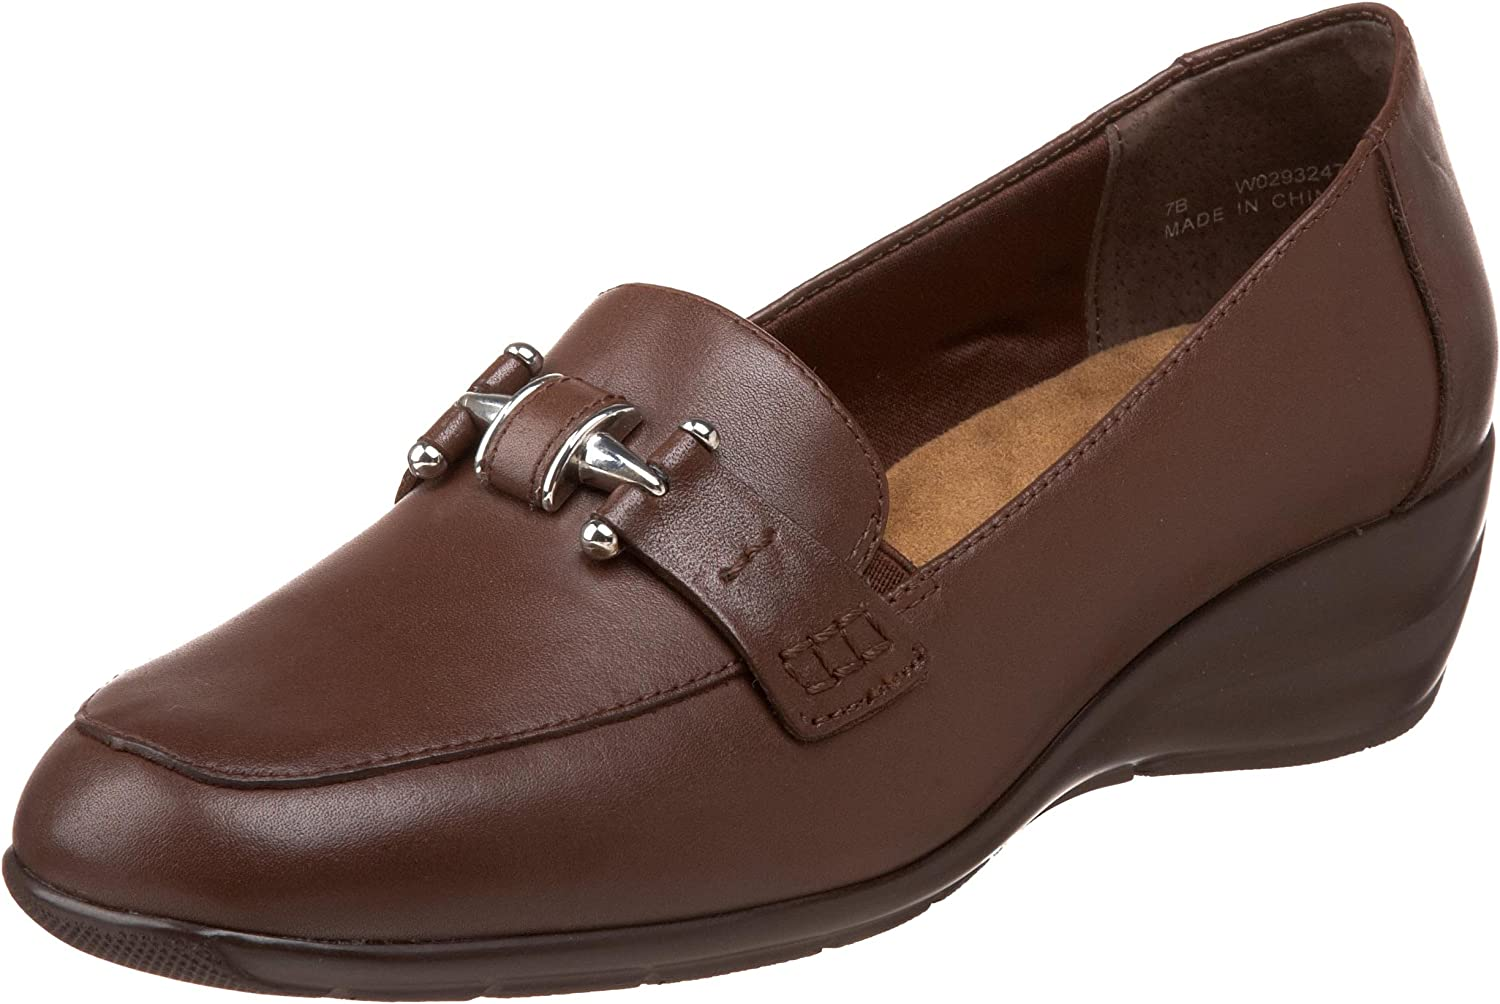 Walking Cradles Women's 67% OFF of fixed price Tops Loafer Slip-On Tulsa Mall